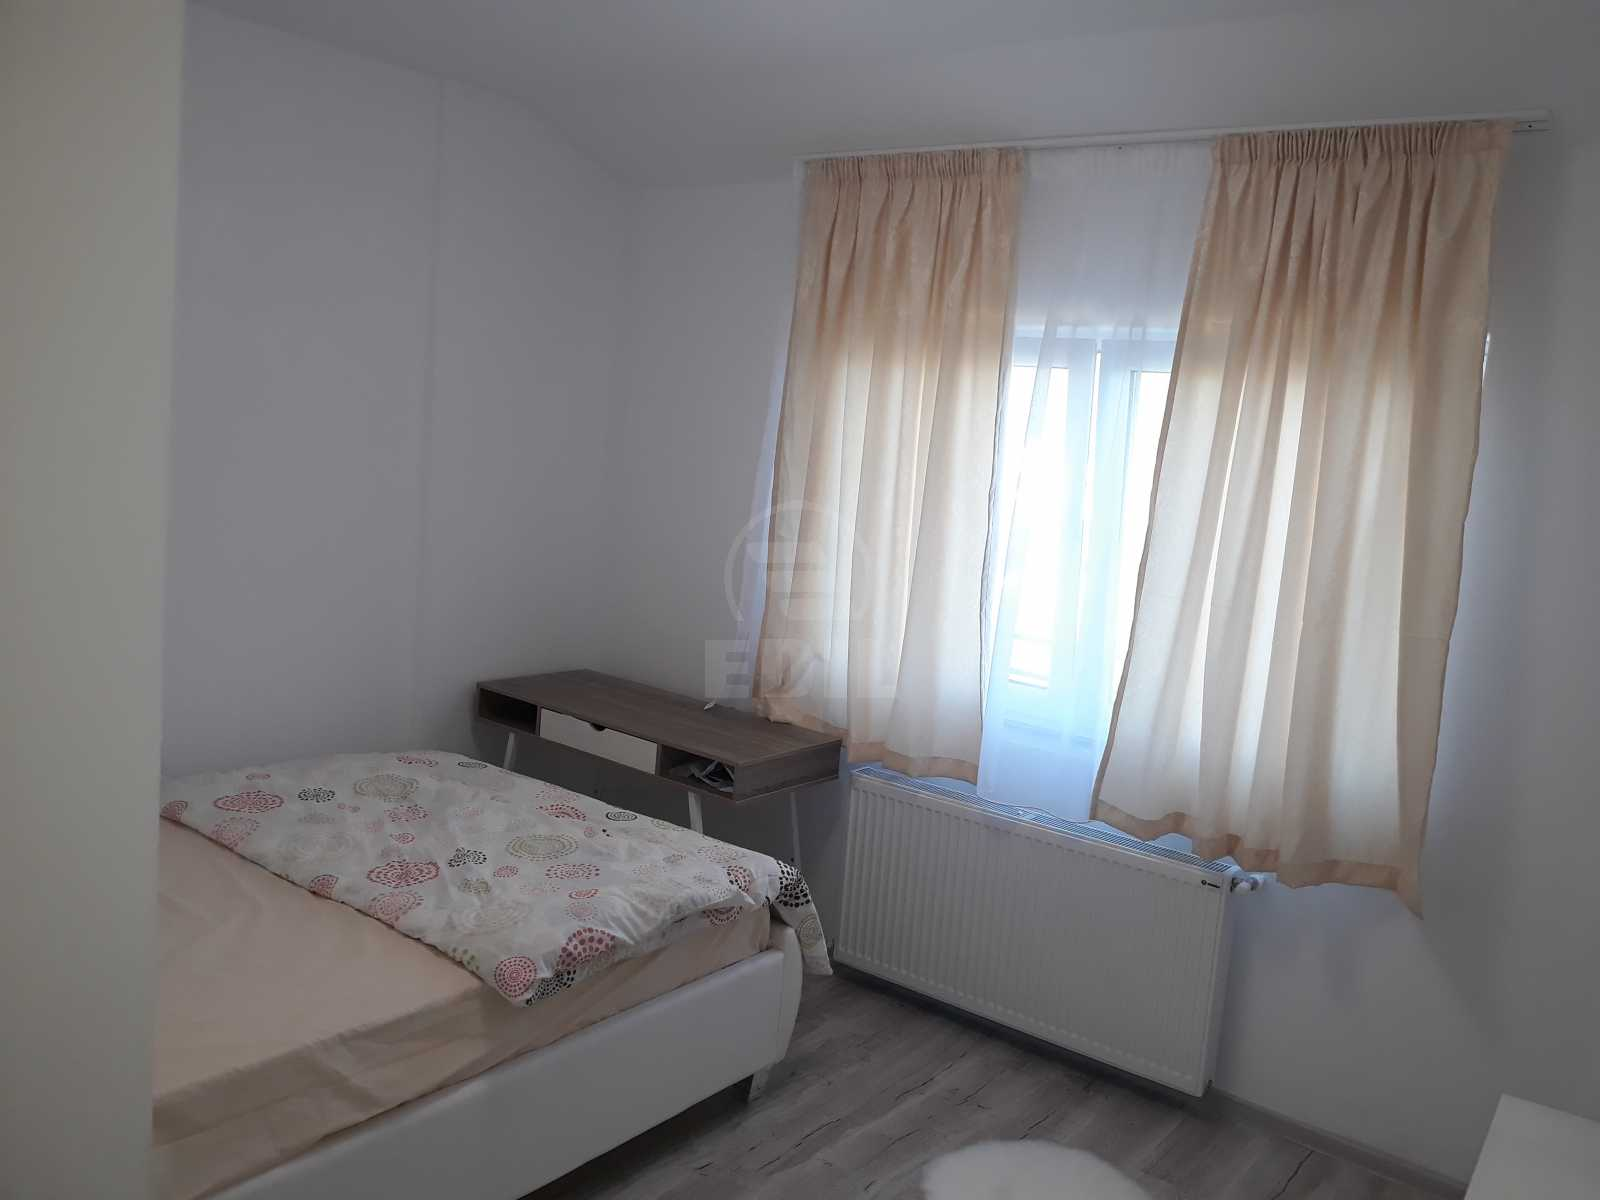 Apartment for rent 2 rooms, APCJ234187FLO-3